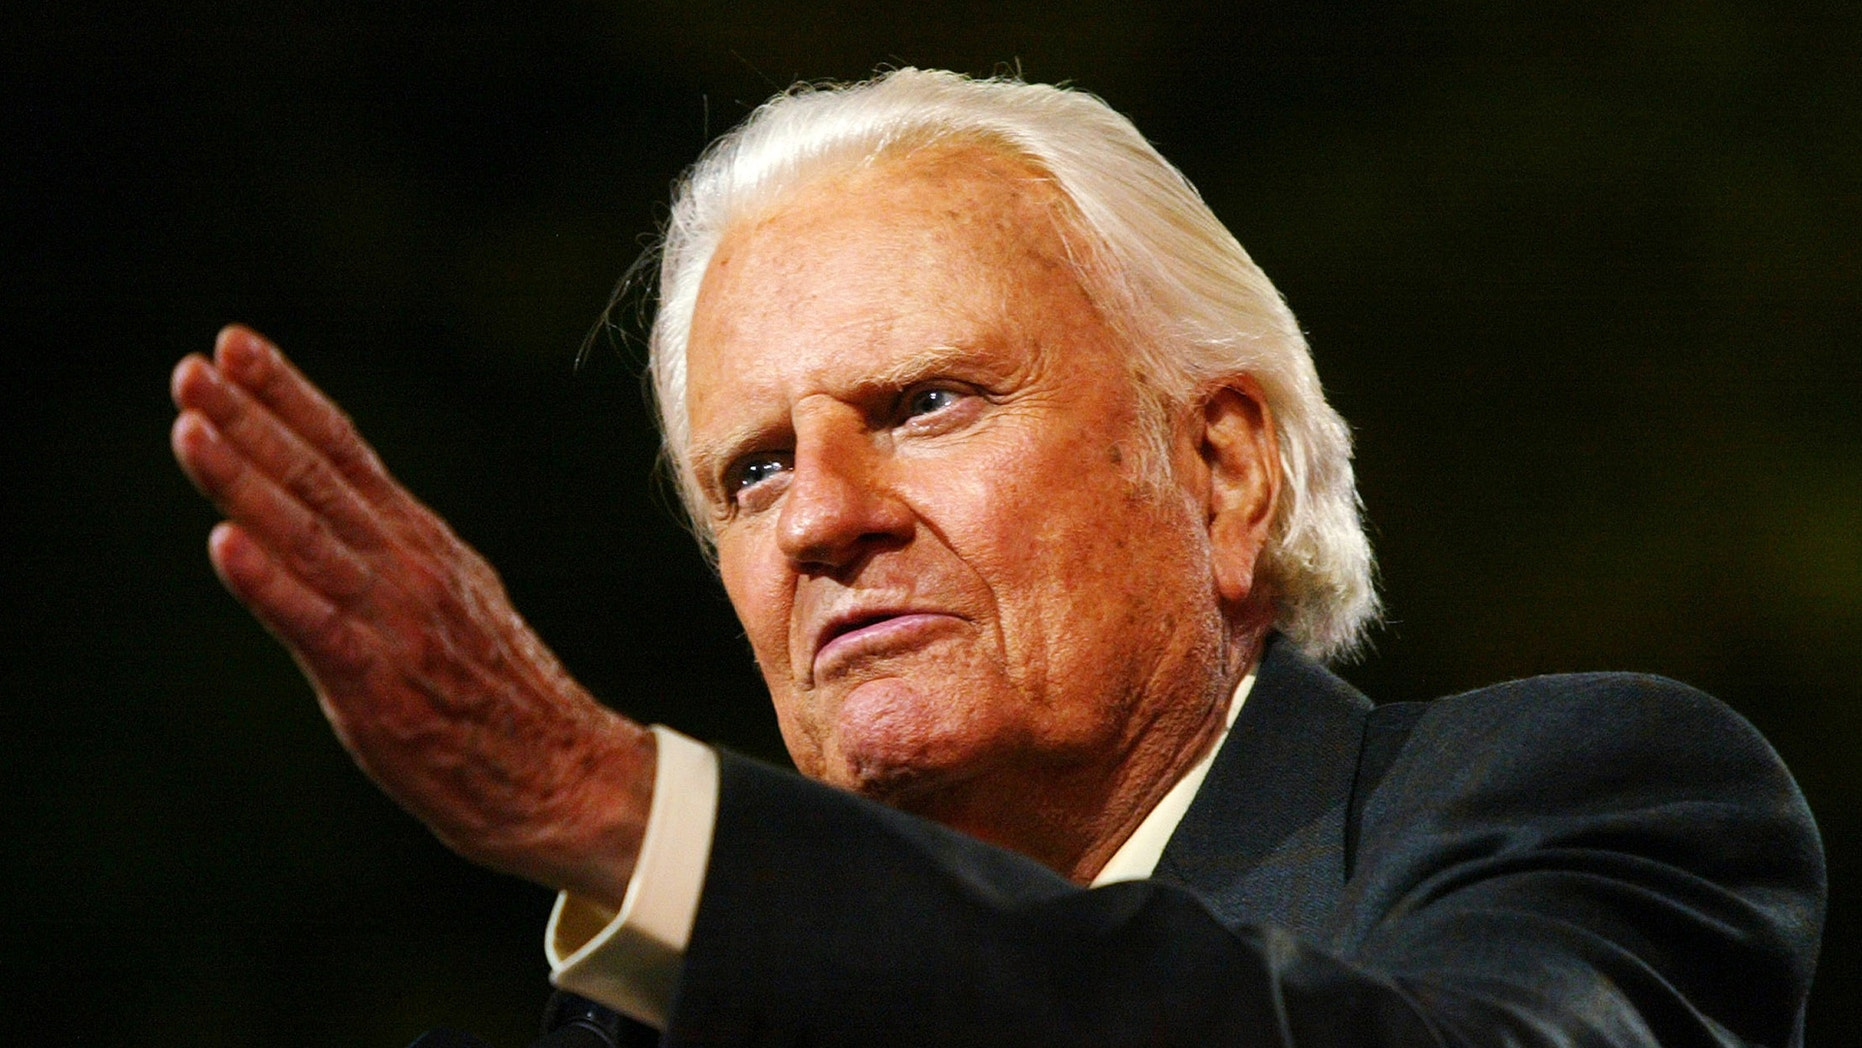 Evangelist Billy Graham speaks to thousands of people during his New York Crusade at Flushing Meadows Park in New York June 24, 2005. Graham, 86, has preached the Gospel to more people in a live audience format than anyone in history - more than 210 million people in more than 185 countries. His followers believe that the New York Crusade, which runs from June 24th to the 26th, will be his last live appearance.  REUTERS/Shannon Stapleton - RP6DRMTLKWAA